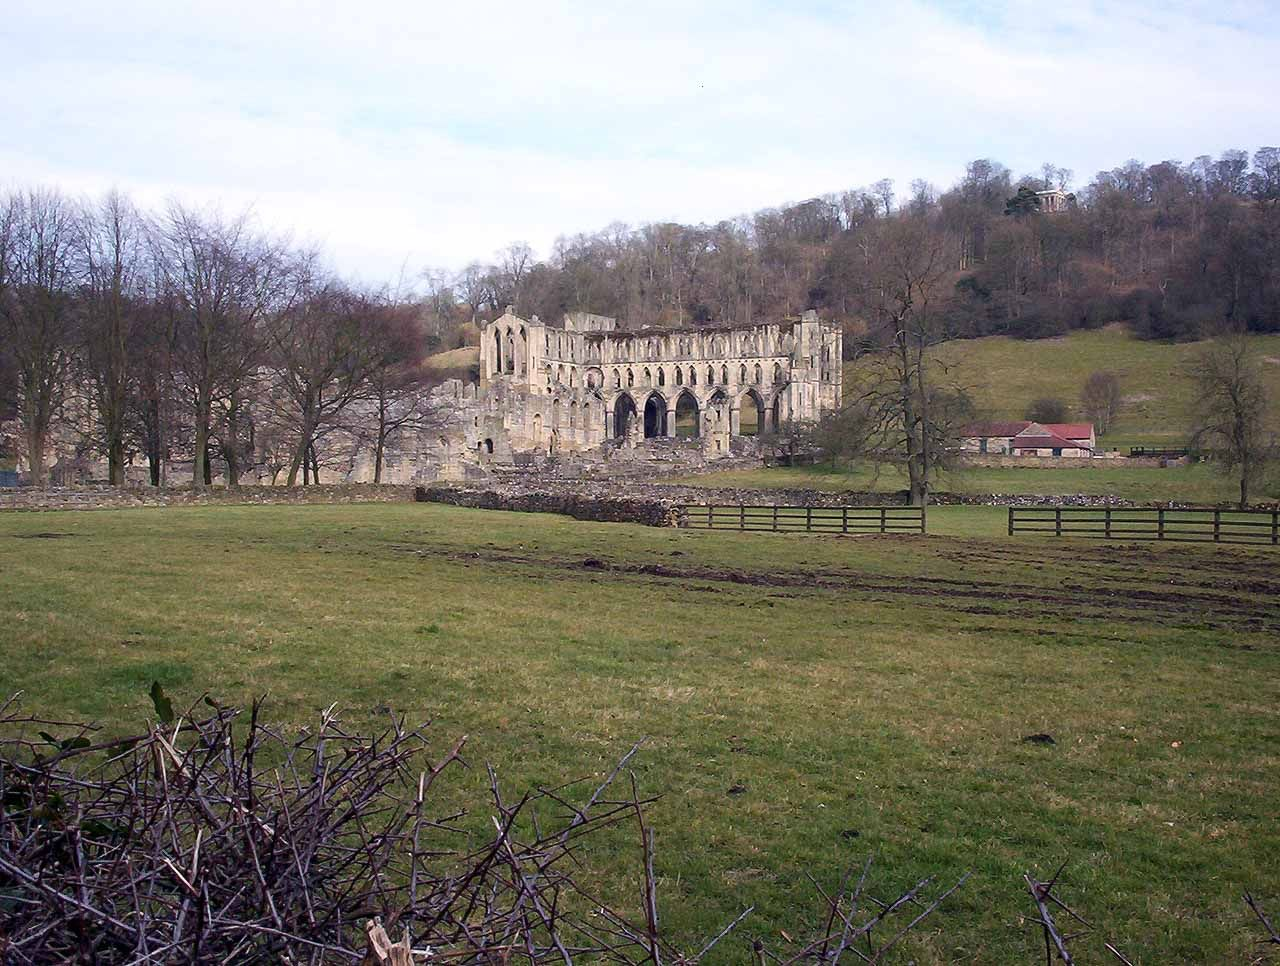 Rievaulx Abbey in North Yorkshire. Once one of the wealthiest Cistercian abbeys in England, it was dissolved  by Henry VIII in 1538.